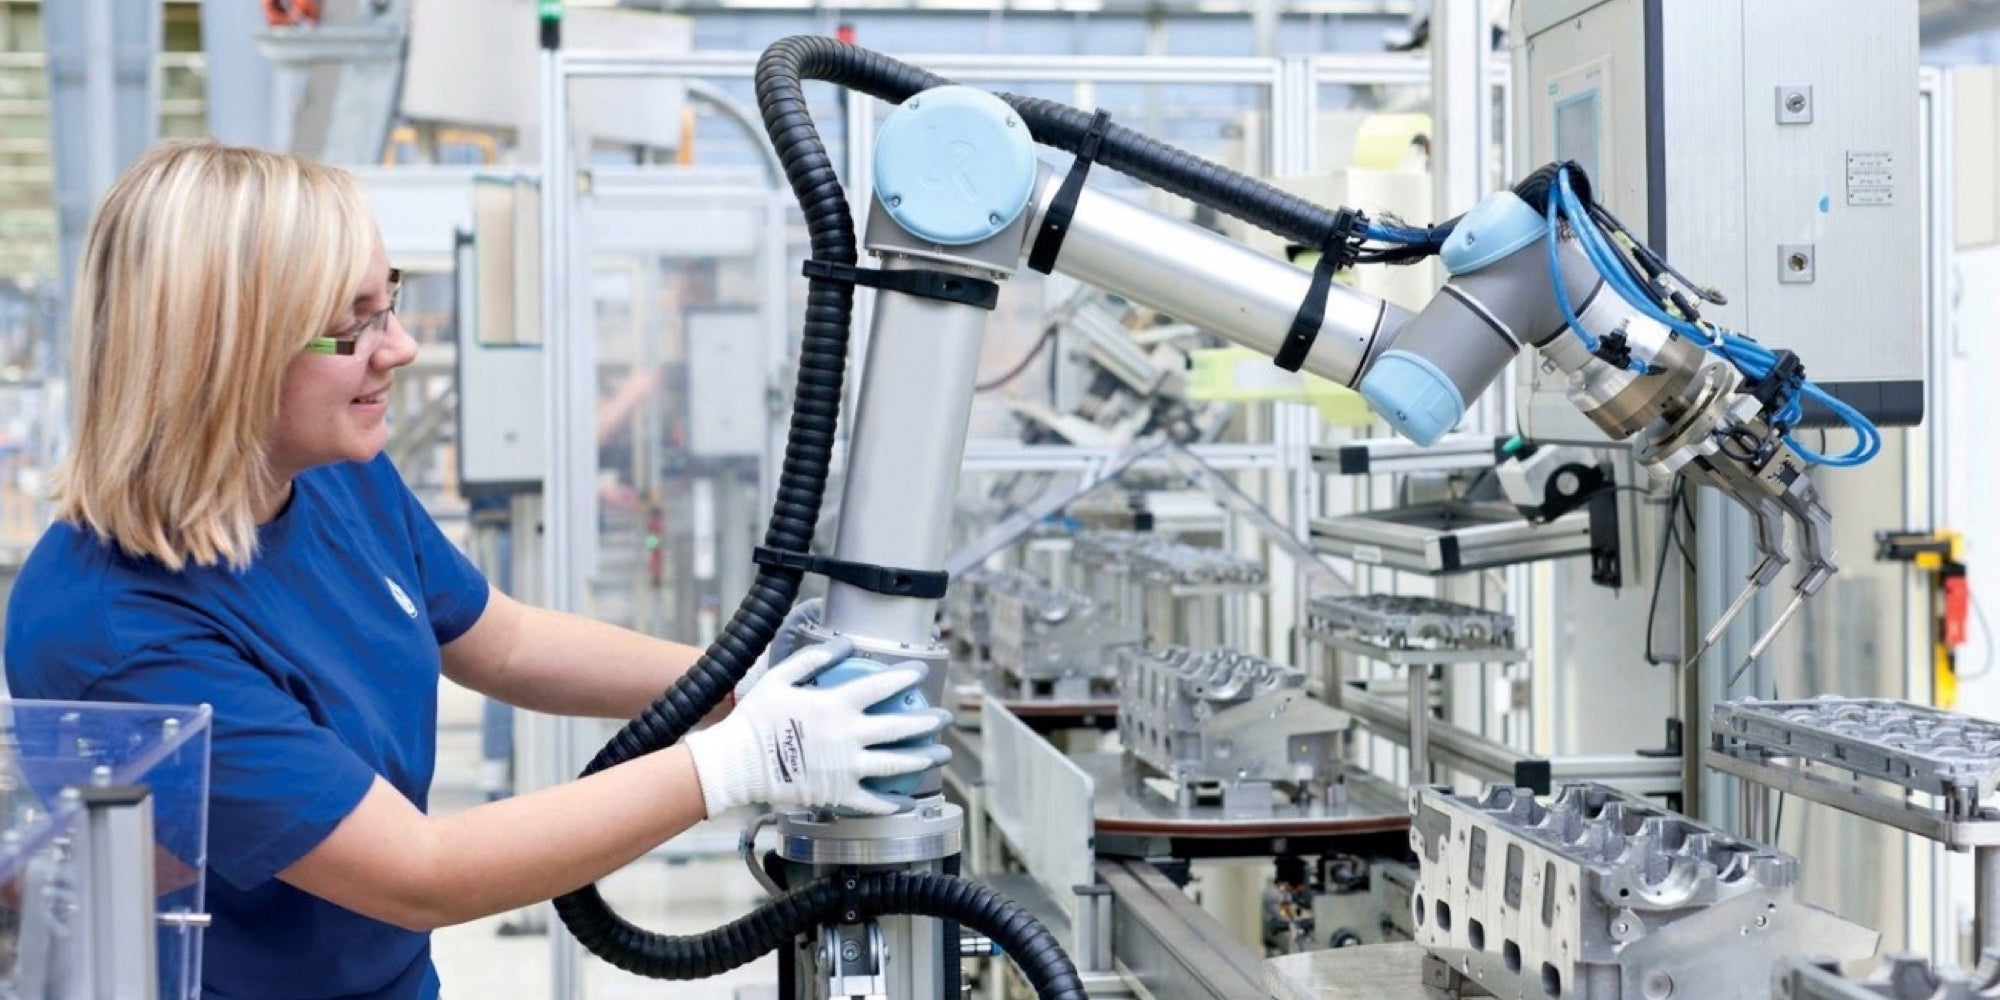 These 5 Robotics Startups Are Changing The Way Work Gets Done